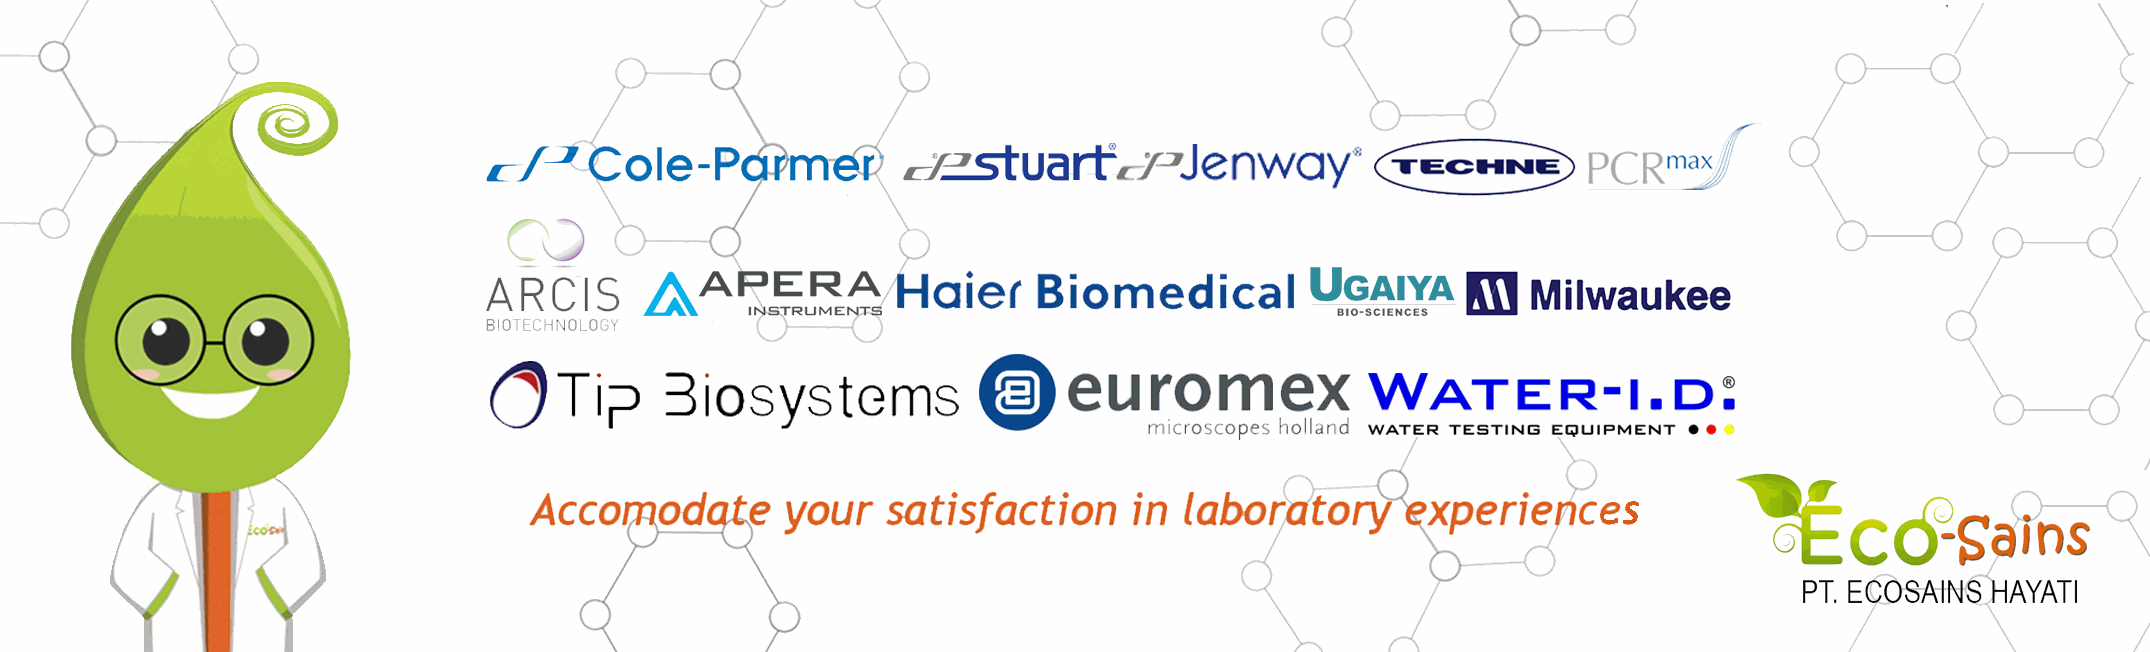 Cole-parmer, stuart-equipment, jenway, techne, PCRmax, ARCIS biotechnology, APERA instrument, haier biomedical, ugaiya bio-sciences, milwaukee, tip biosystems, euromex microscopes, water-id water testing equipment